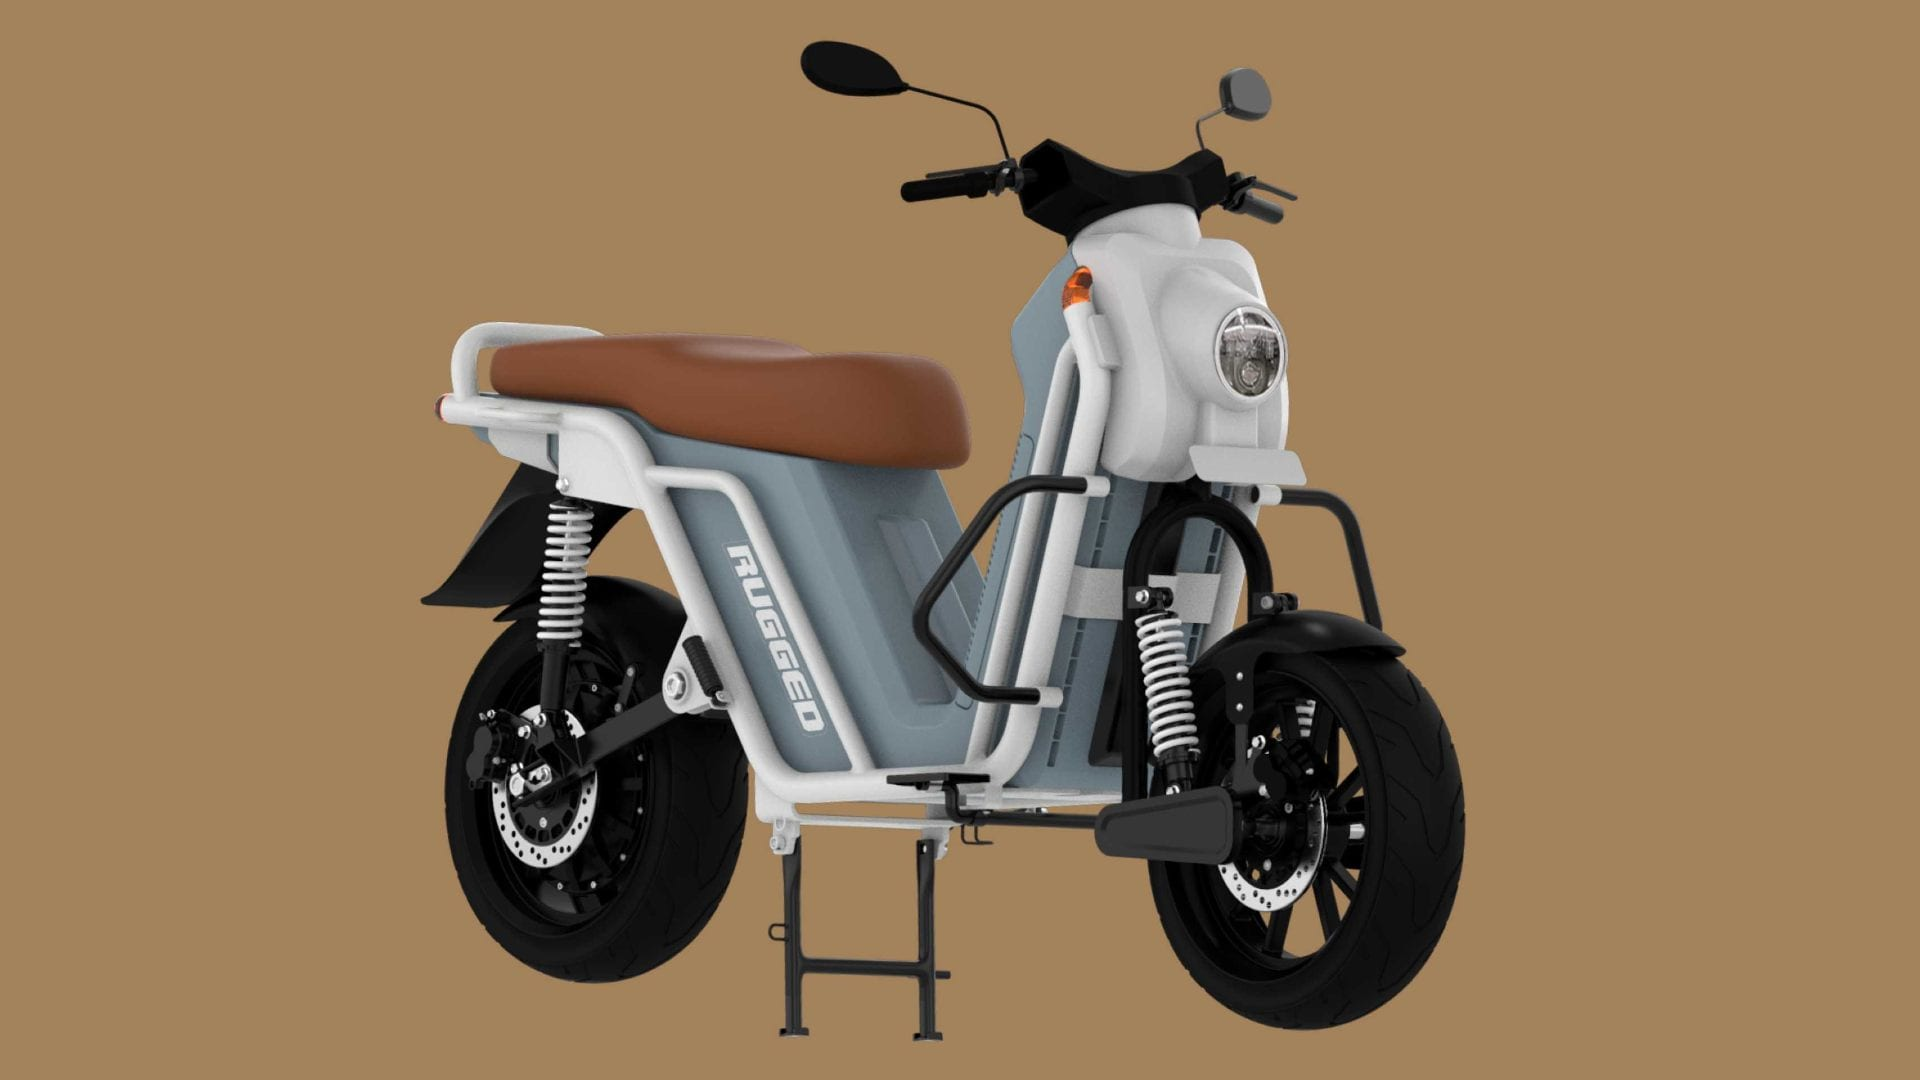 The Rugged G1 will be available in single- and dual-battery versions. Image: EBikeGo